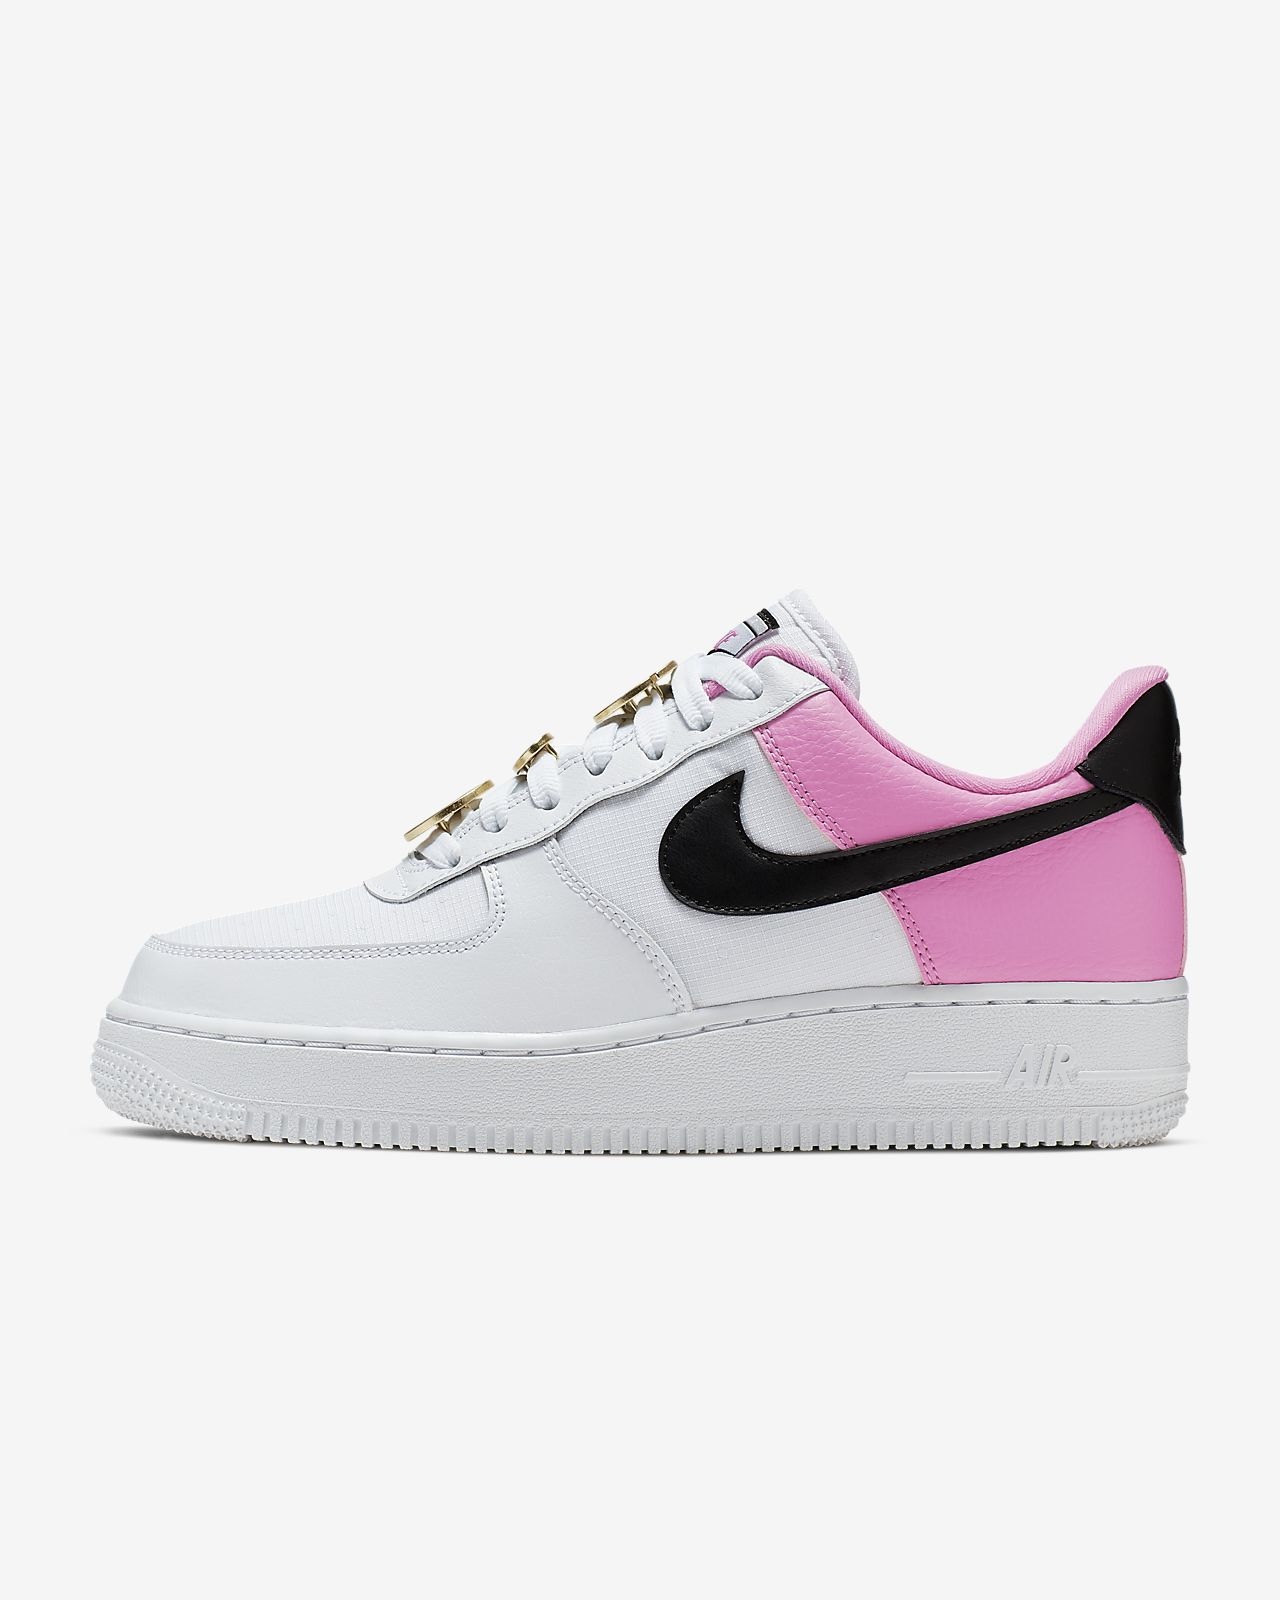 72f364c225 Nike Air Force 1 '07 SE Women's Shoe